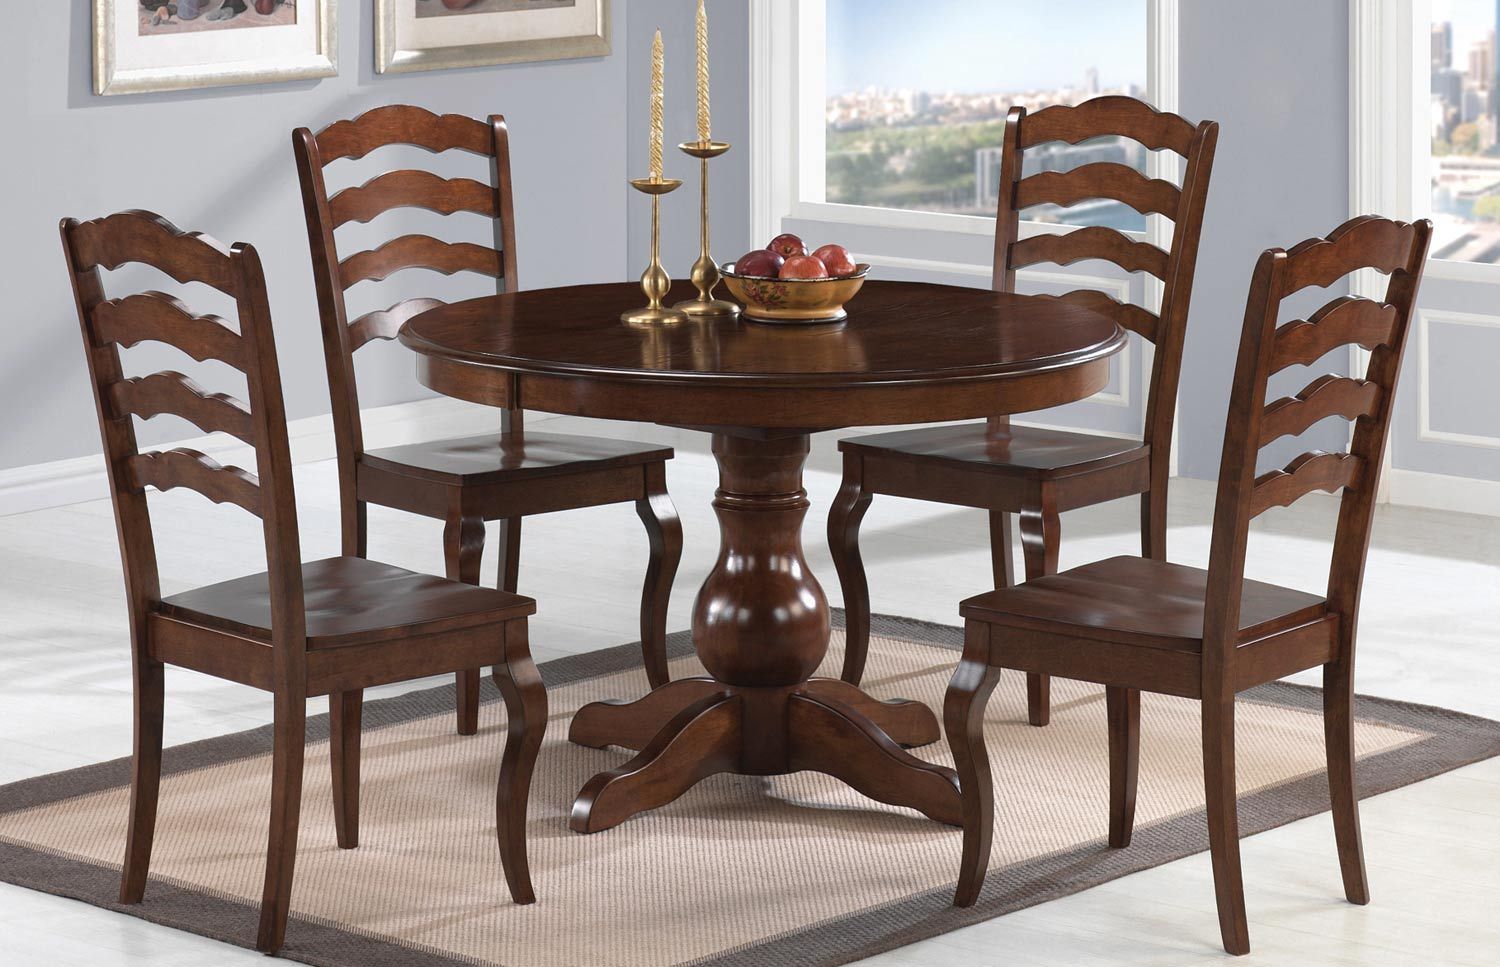 Coaster Davis Round Dining Set - Warm Oak